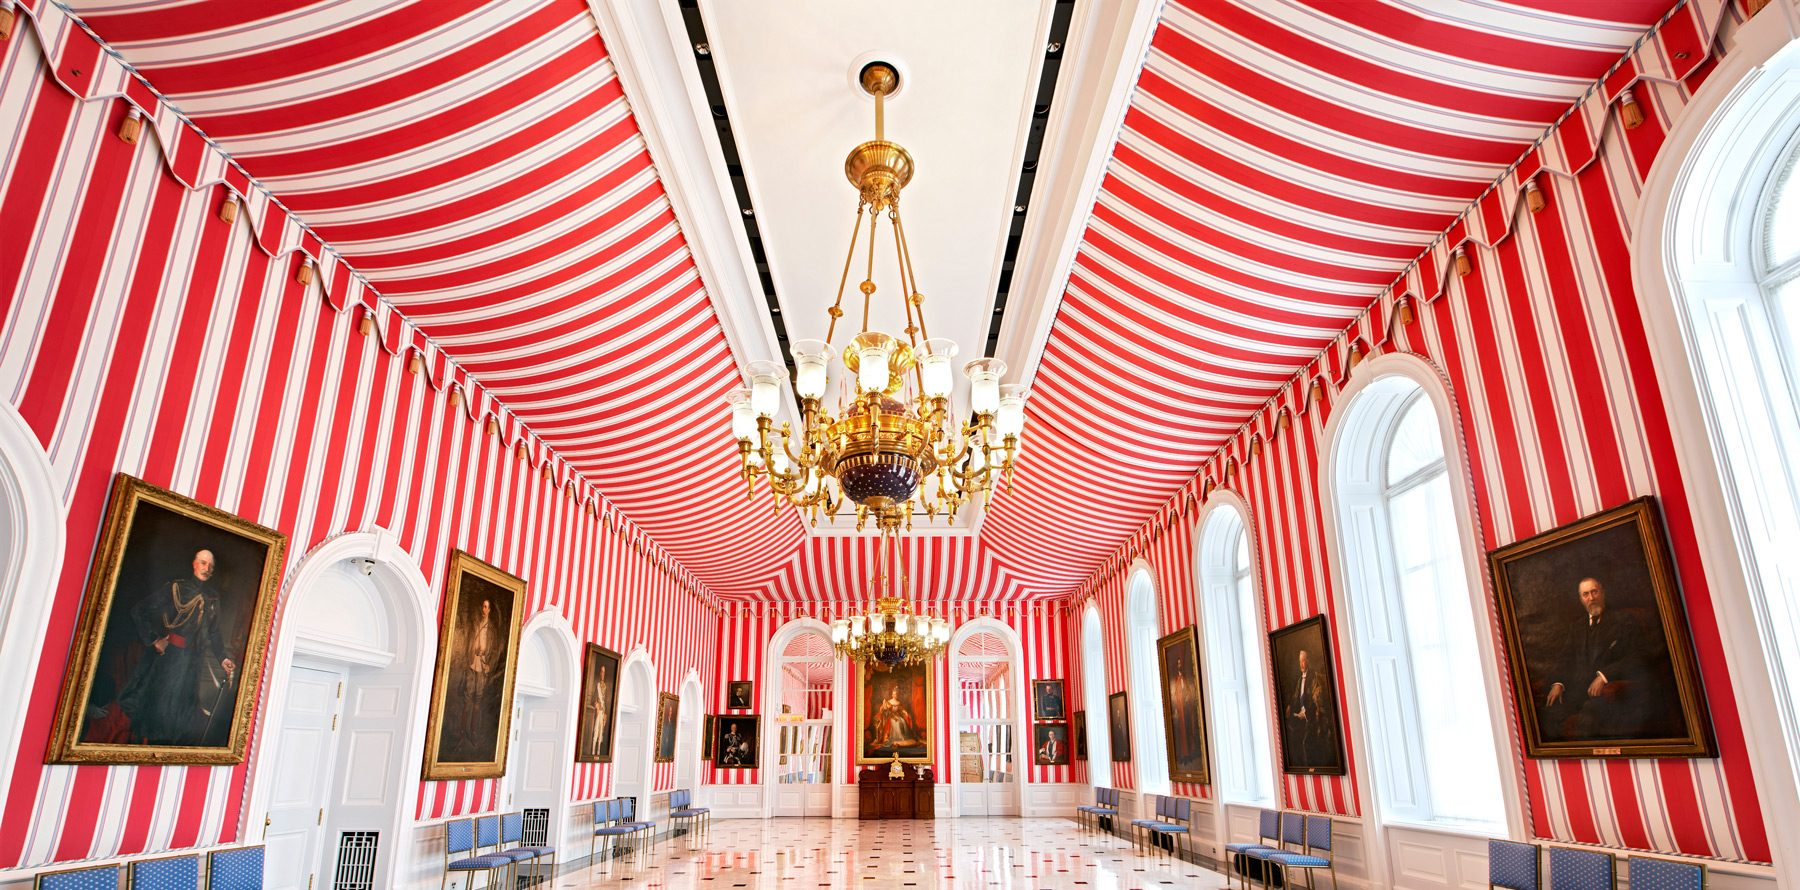 "After the government purchased the land in 1868, the former MacKay family home (built in 1838 by stonemason Thomas MacKay) was added to extensively, creating a patchwork of styles, but none so unusual as the Tent Room. Resembling a candy cane or a popcorn box, it was created by the Earl of Dufferin (Canada's third governor general) to host indoor parties reminiscent of outdoor events held in England's more accommodating weather. The room also doubled as a tennis court. Later, portraits of key figures in Canada's sports history replaced tennis racquets and balls: Lord Stanley, who donated ""the cup,"" and Earl Grey, who donated the other (CFL) ""cup."" Elsewhere, Glenn Gould's practice piano occupies a corner of the Long Gallery, while the Ballroom bedazzles guests with its one-tonne chandelier (boasting 12,000 crystals) given to Canada by England for its aid in the Second World War. Caption: Matt Harrison. Photo: Marc Fowler"